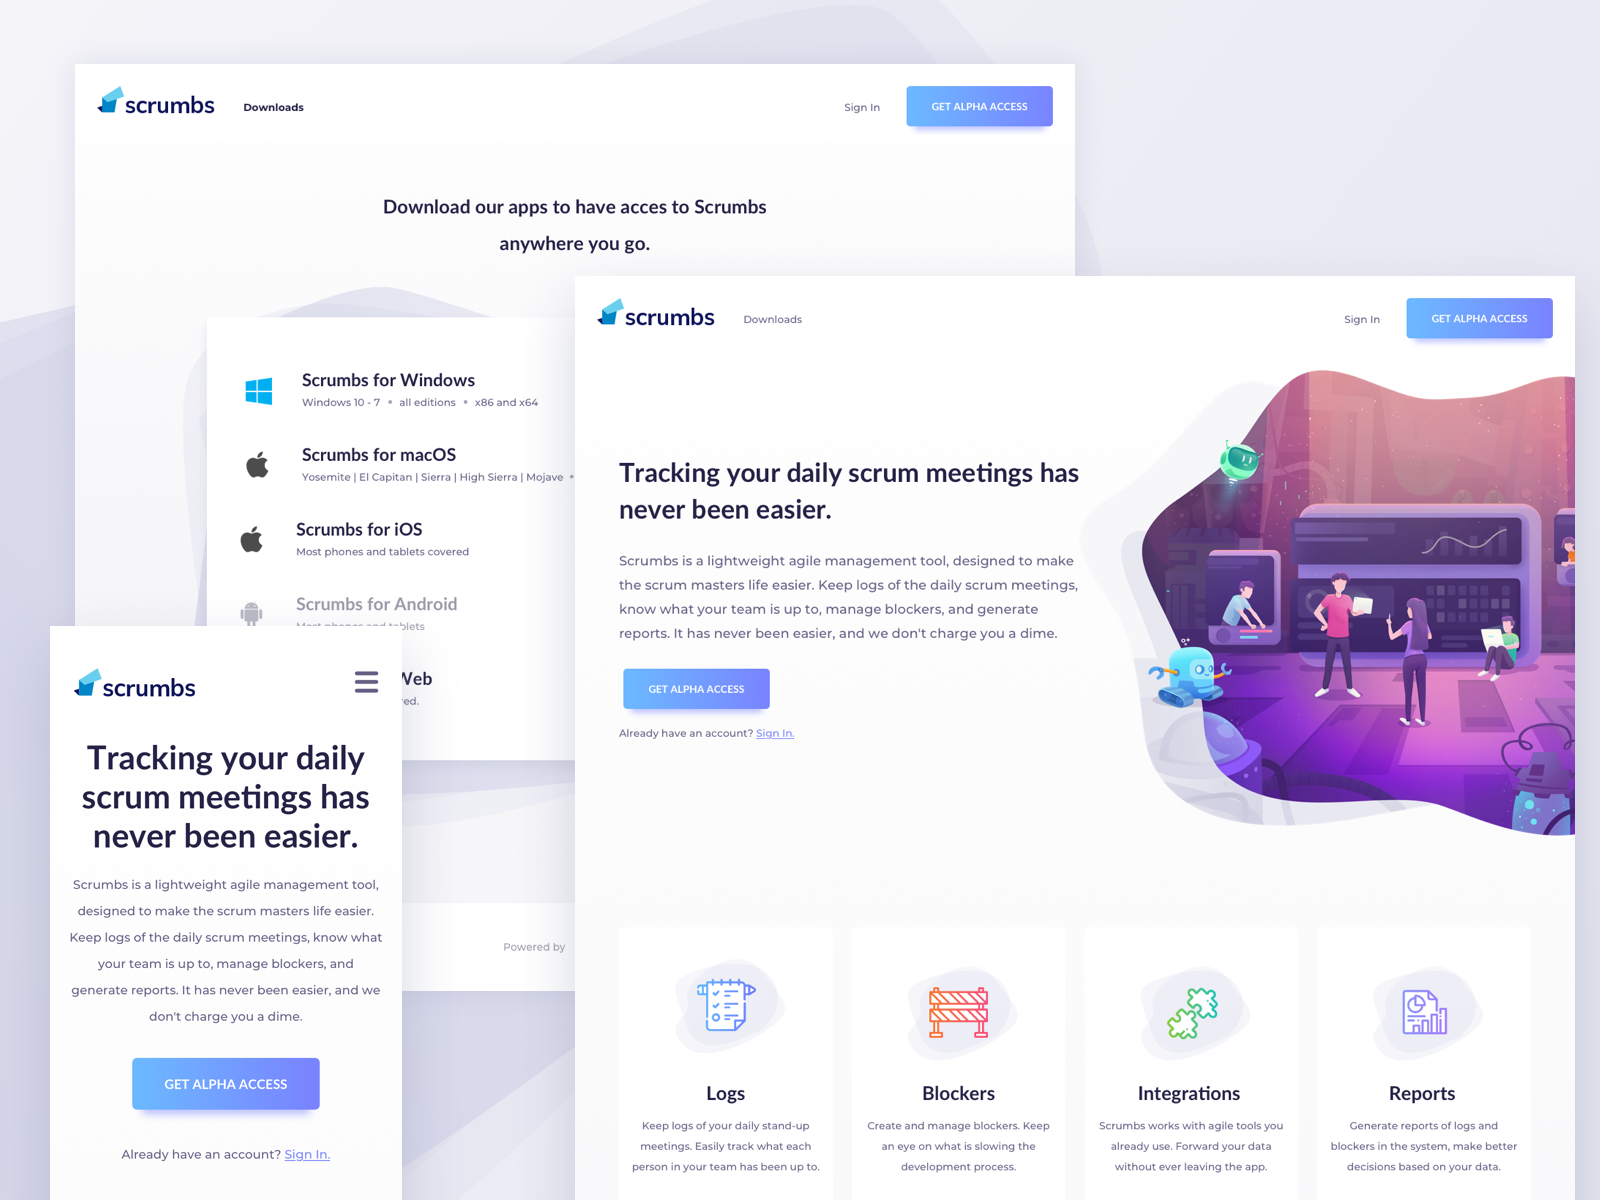 Day 625 scrumbs landing page